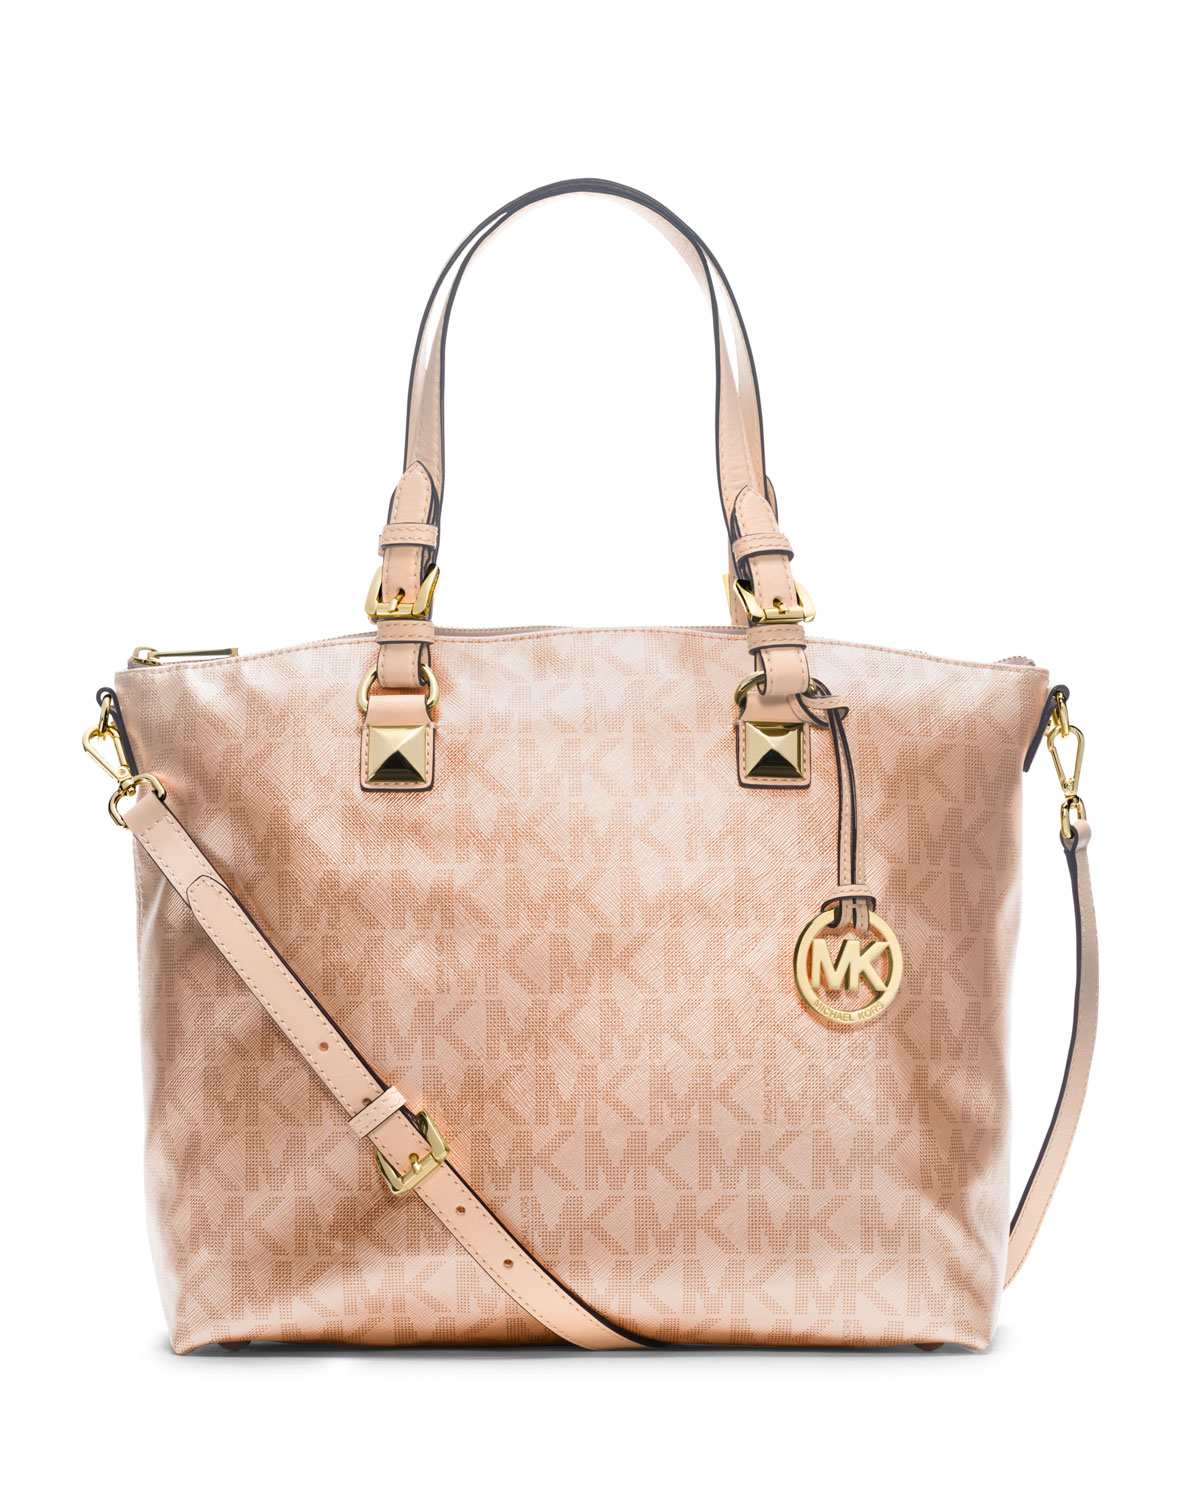 Lyst Michael Kors Jet Set Metallic Multifunction Satchel In Natural